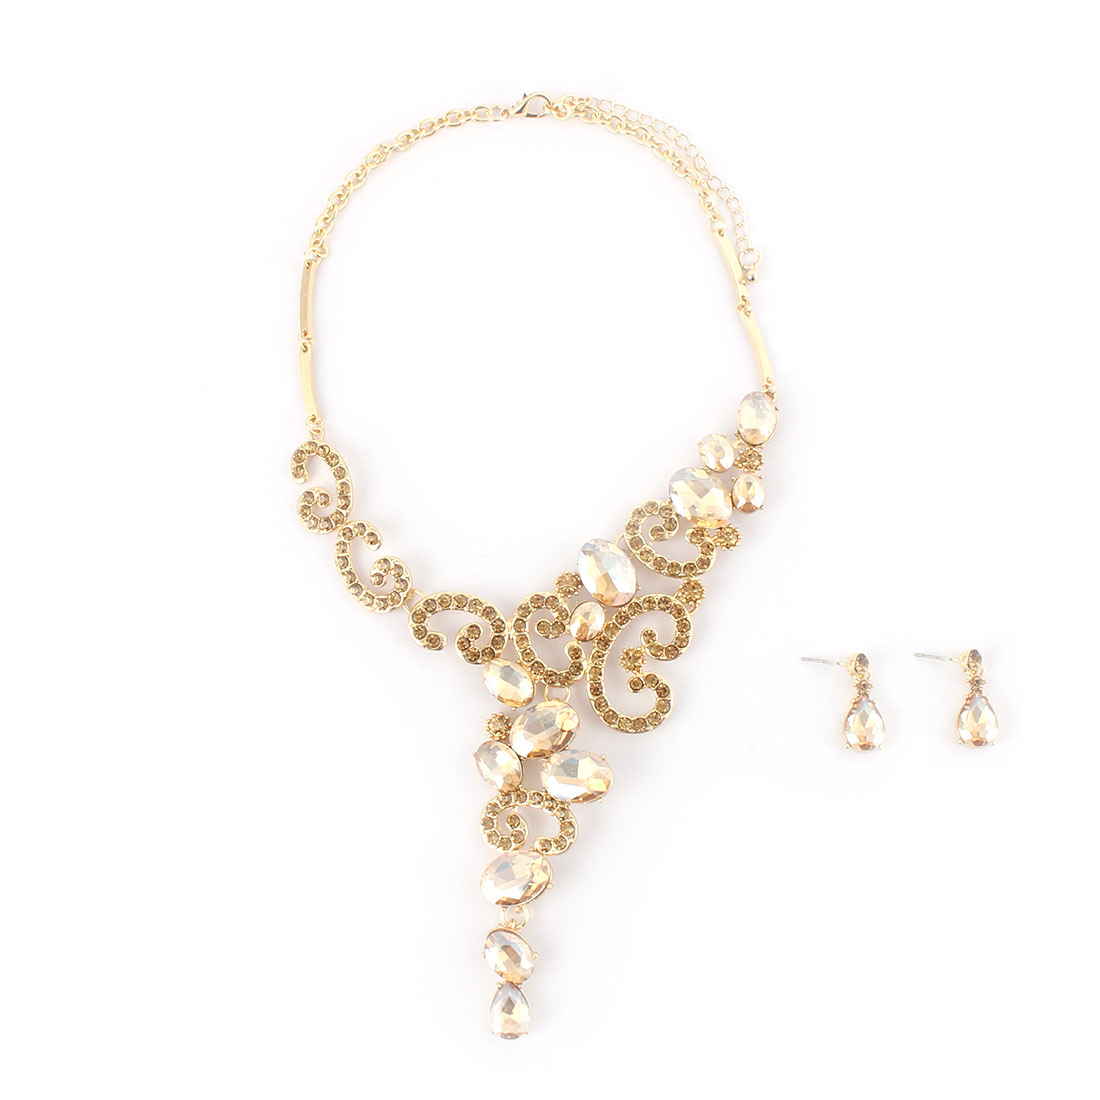 Women Metal Faux Rhinestone Inlaid Pendant Bib Collar Charming Necklace Earrings Gold Tone Set